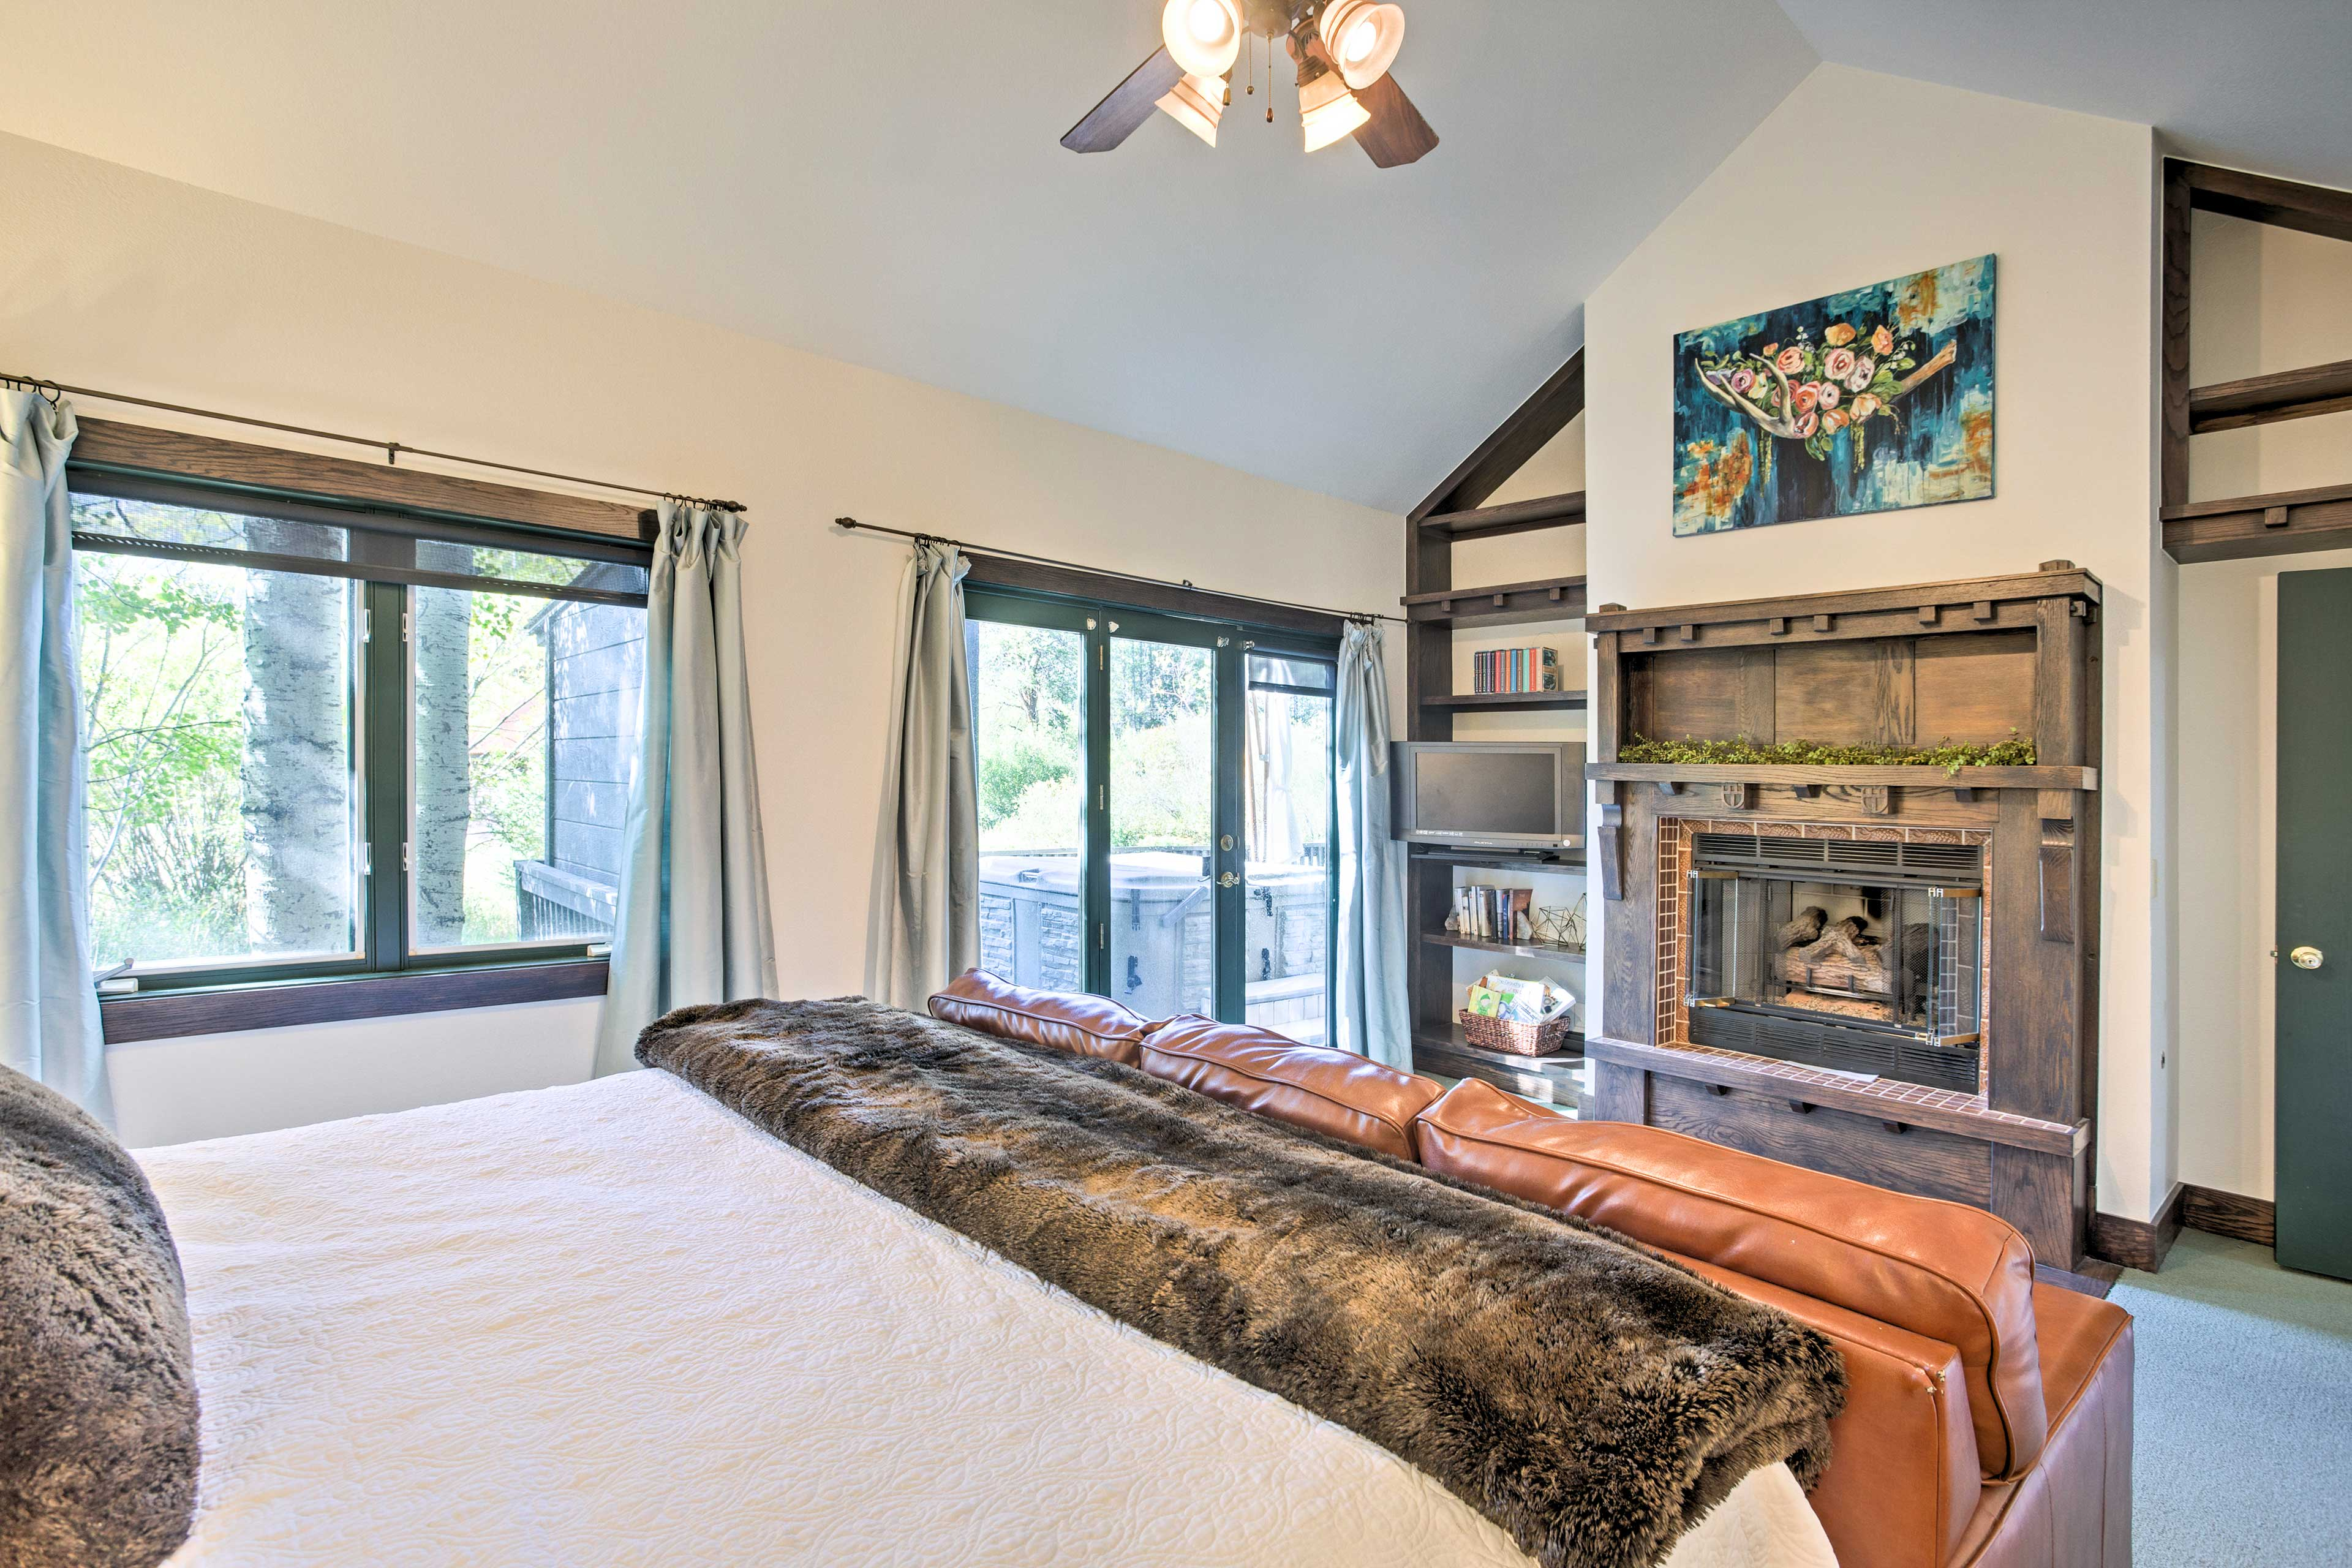 The master suite also boasts a rustic fireplace and cable TV.